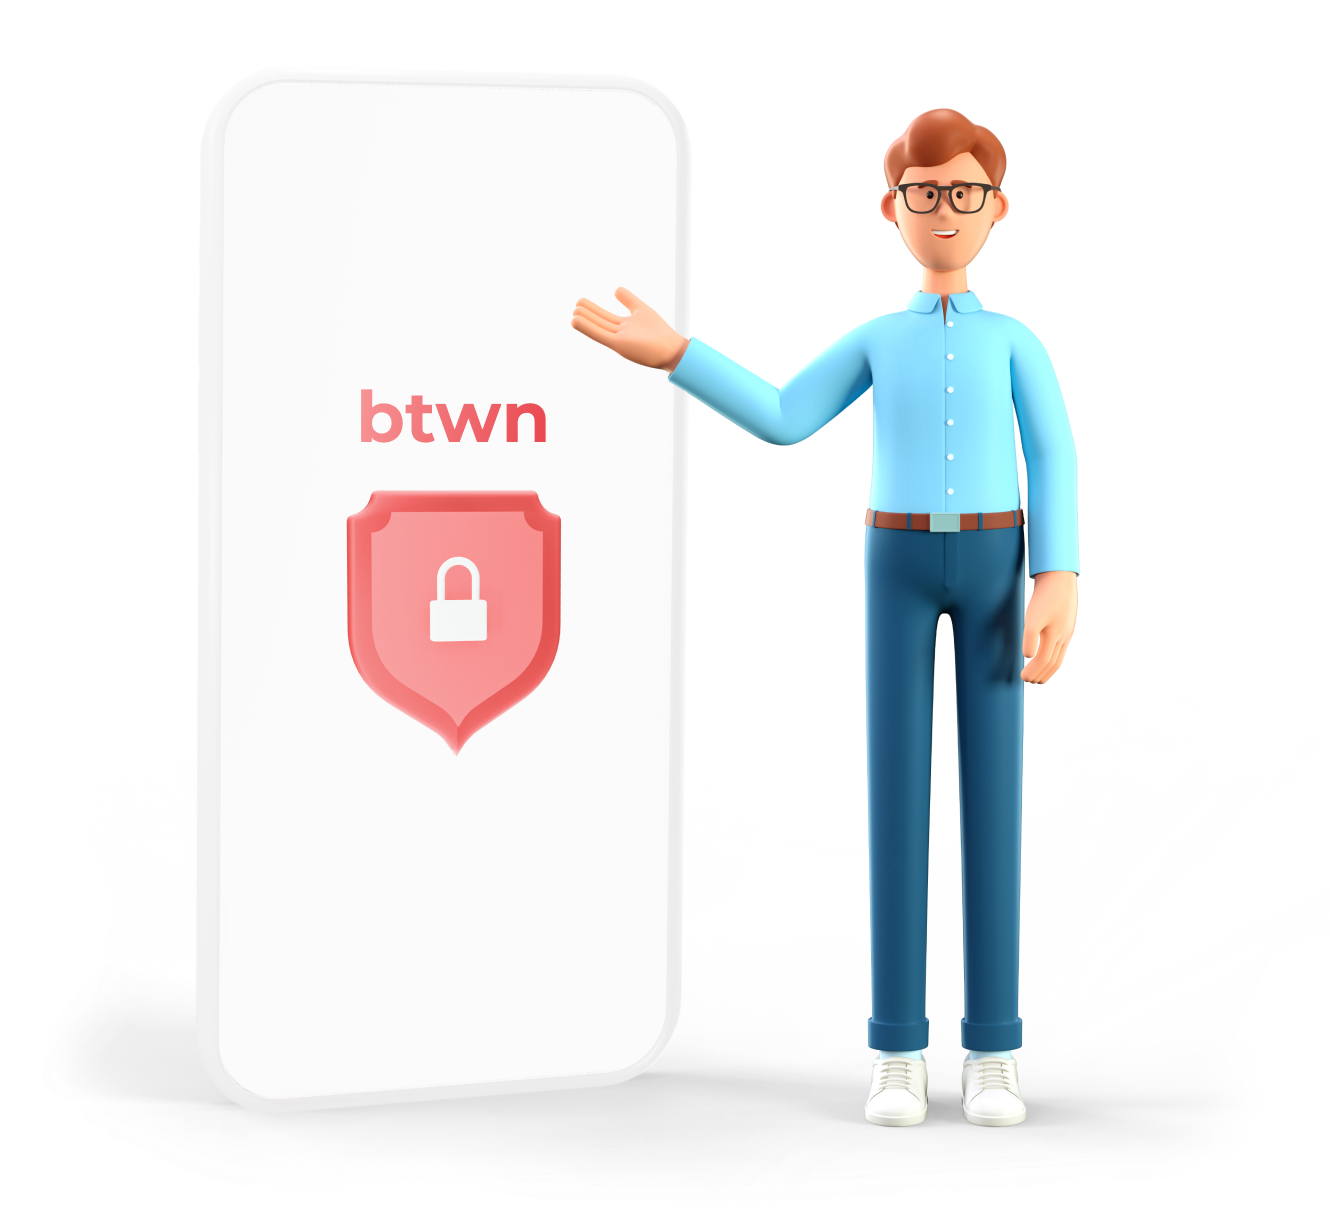 Earn with Security Your security is the top priority at btwn.  We always ensure your data is protected.